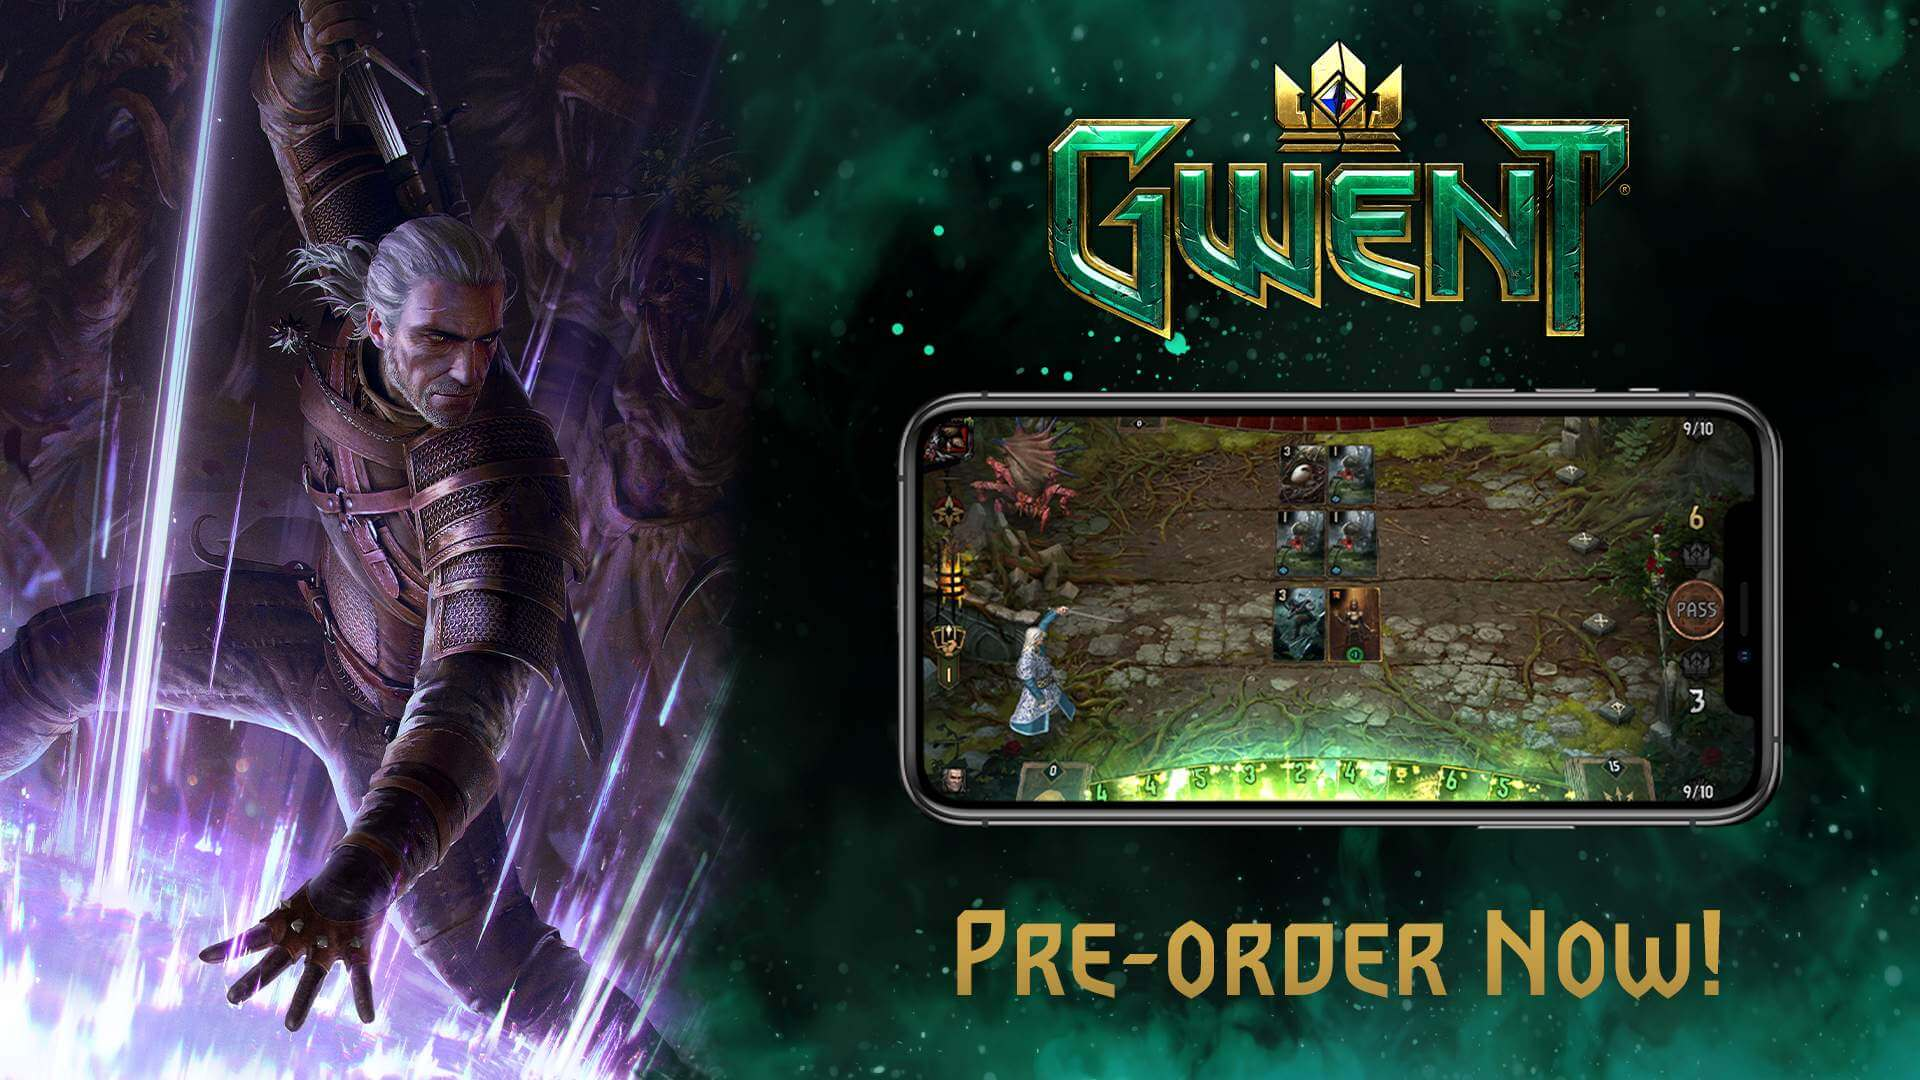 Gwent is coming to iOS next month